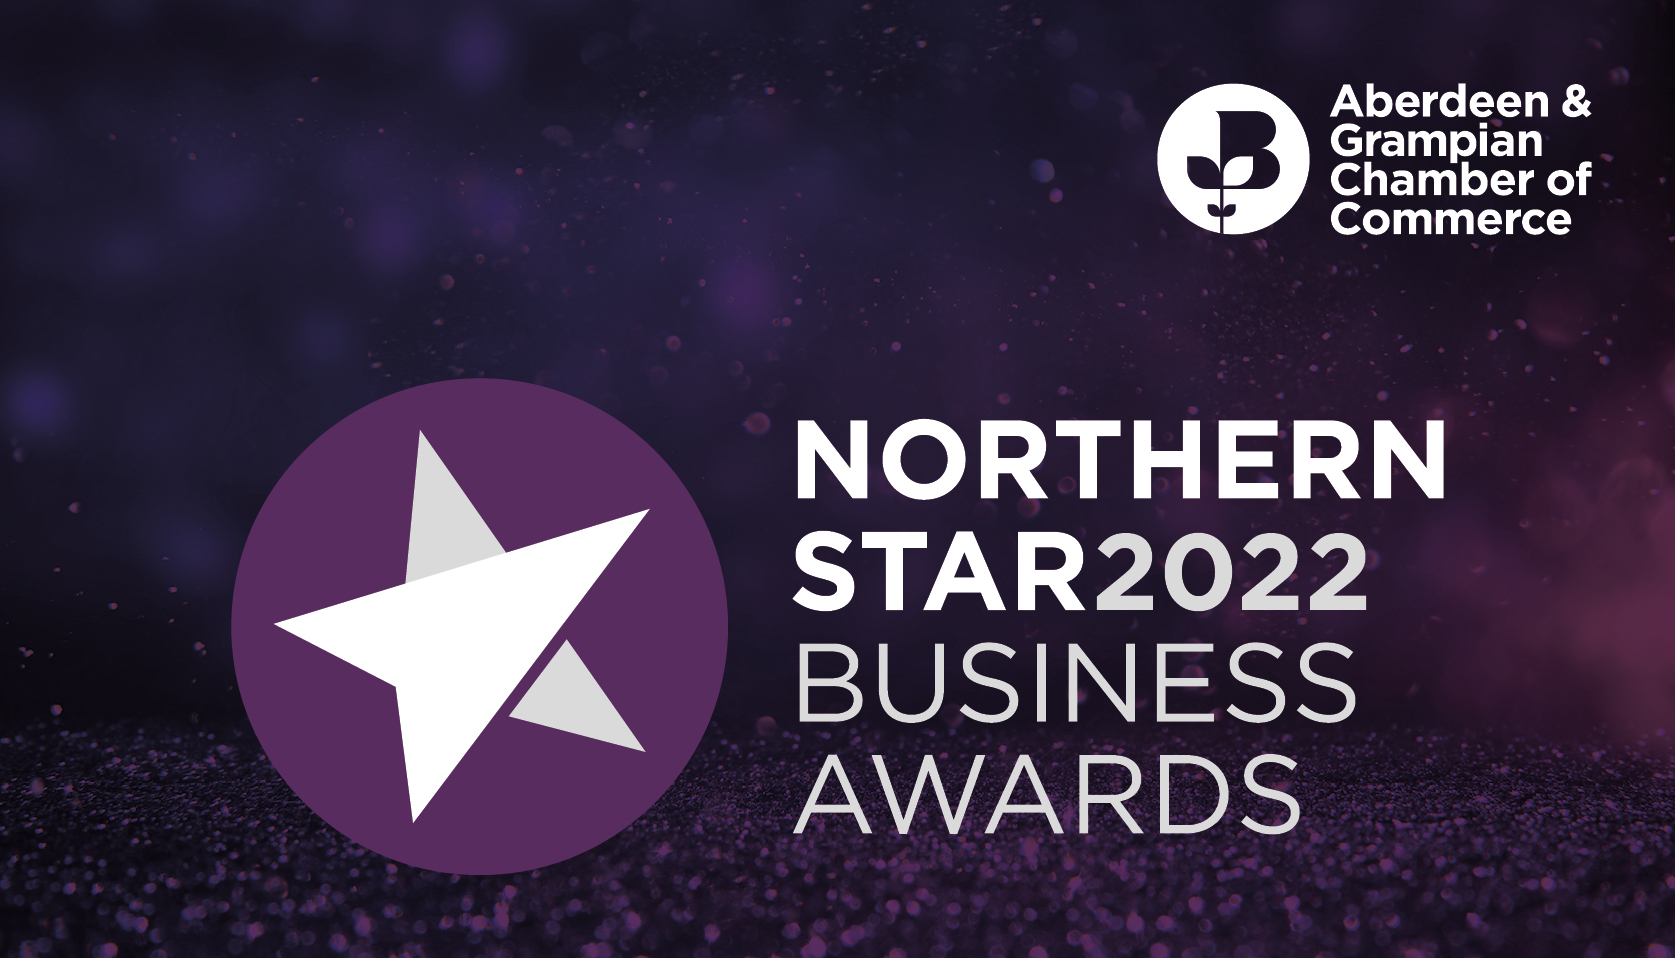 Northern Star Business Awards 2022